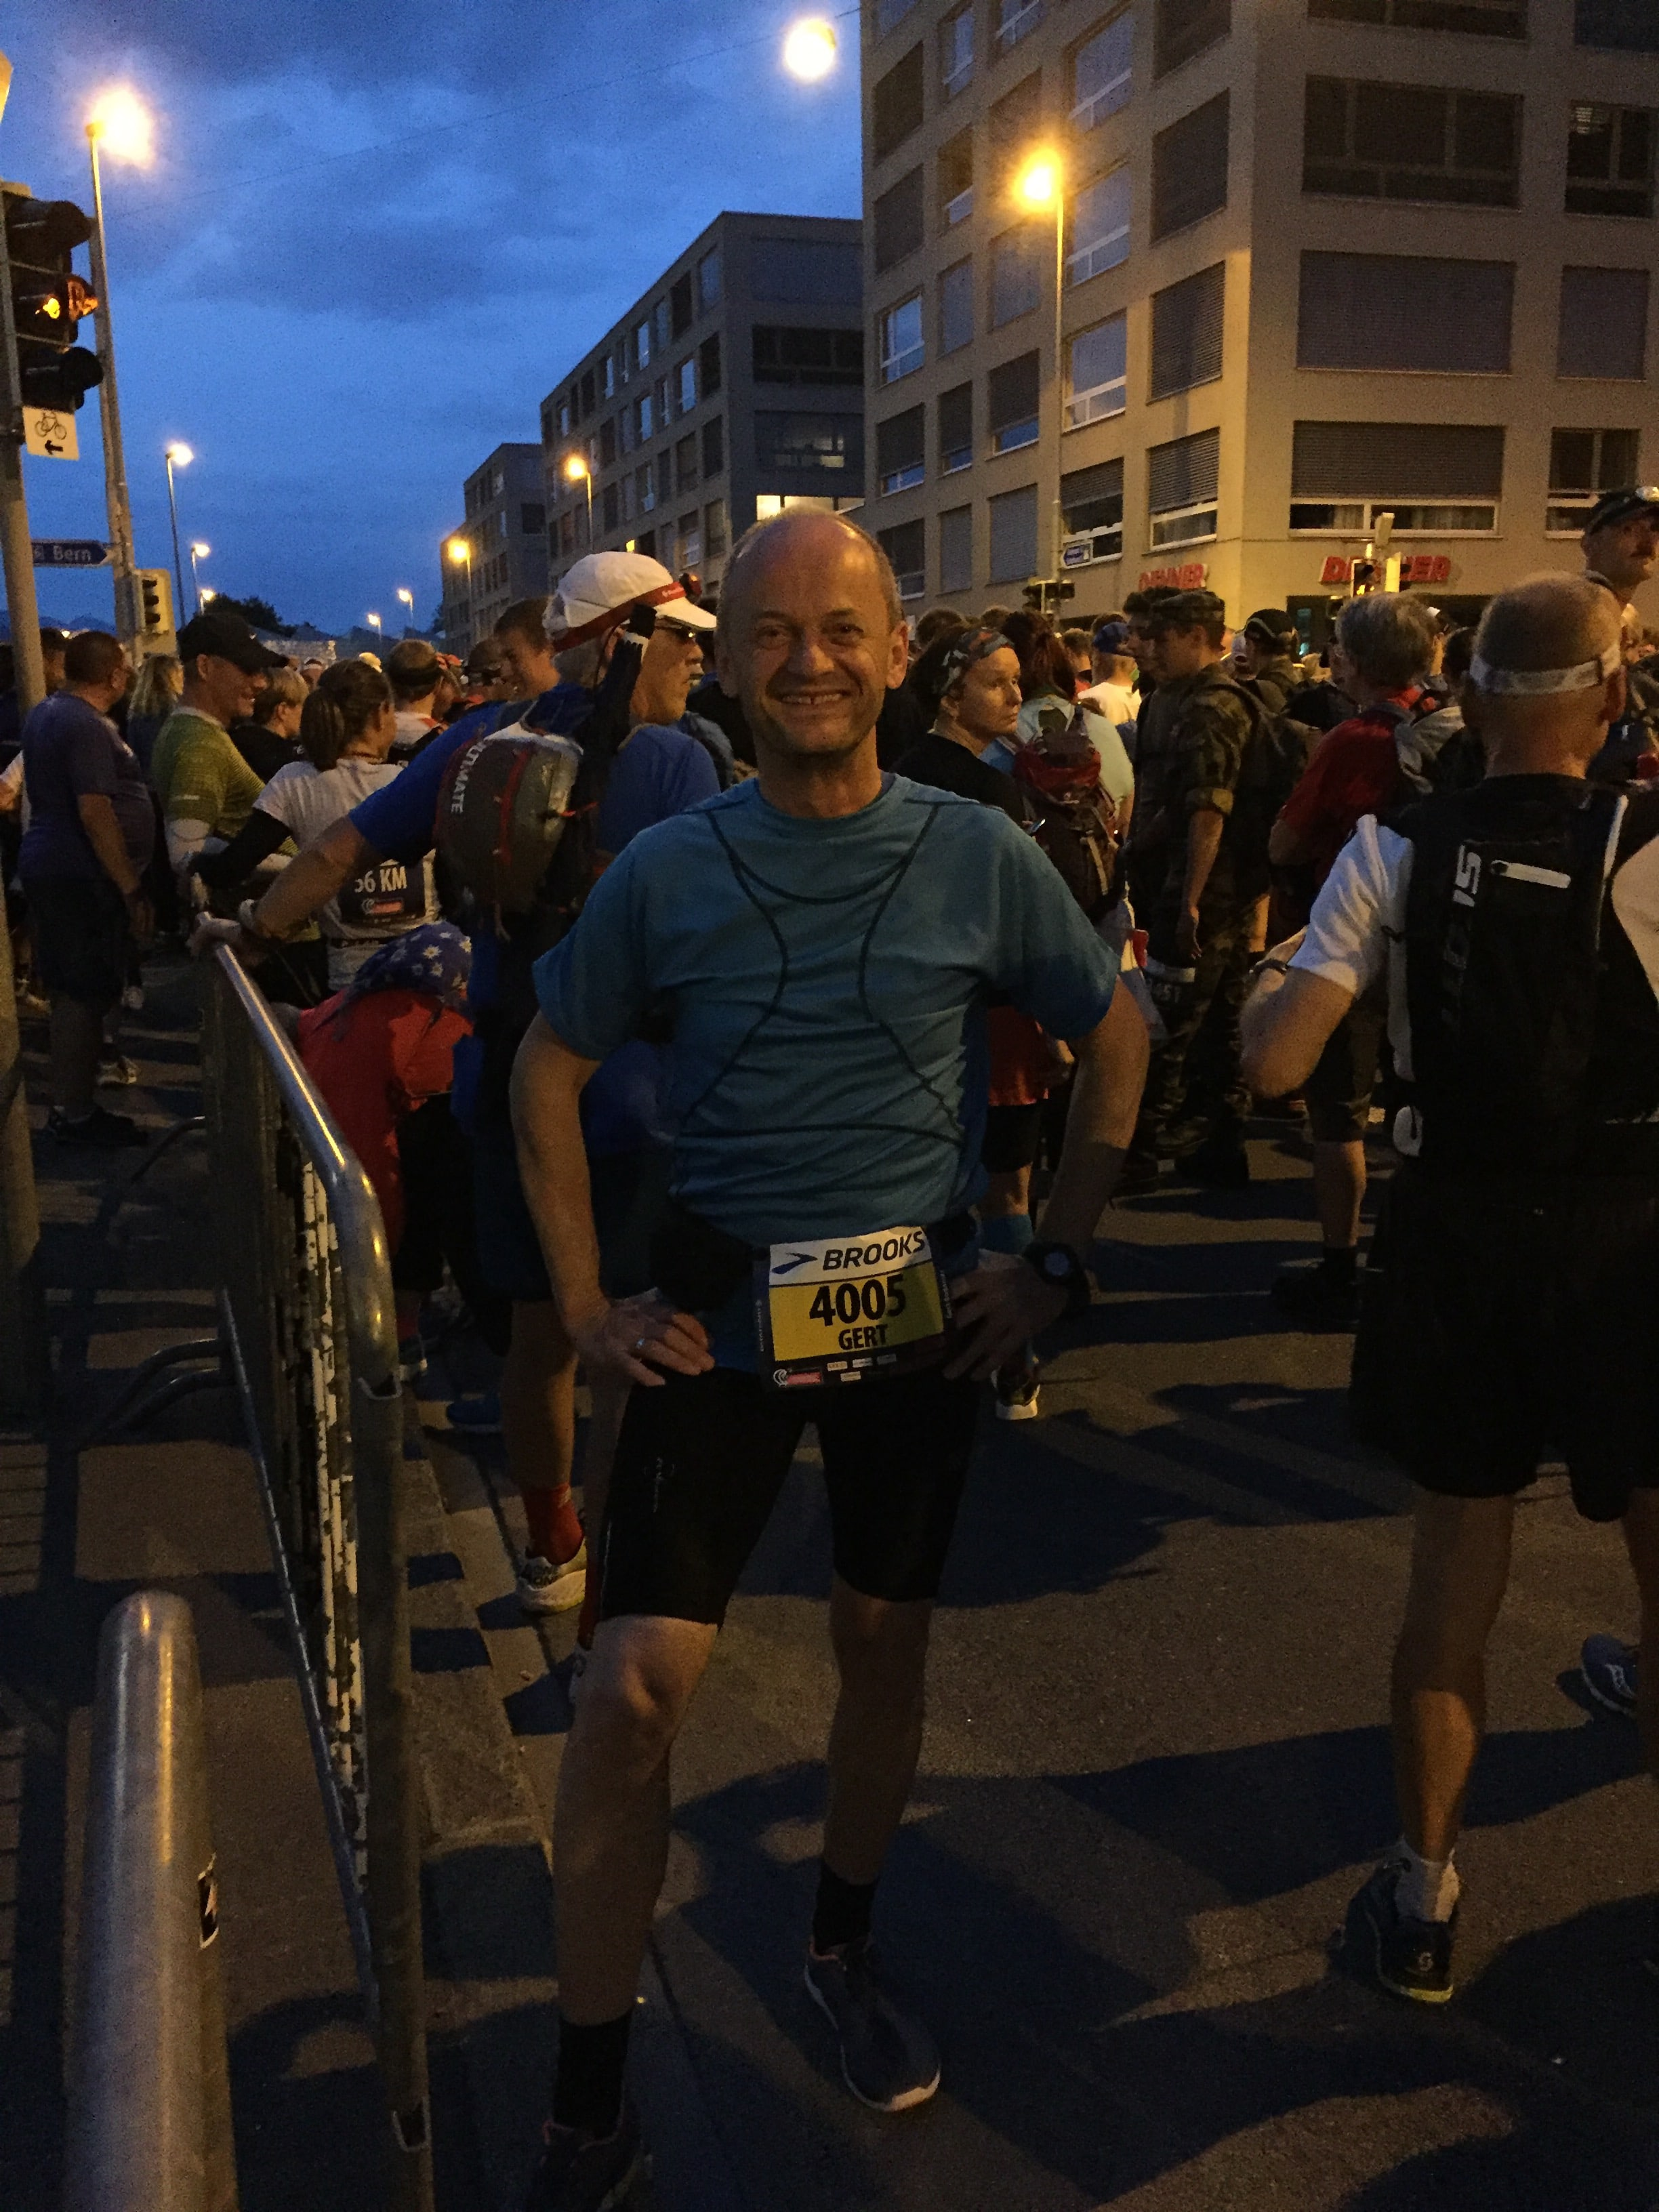 Gert beim Start in Biel